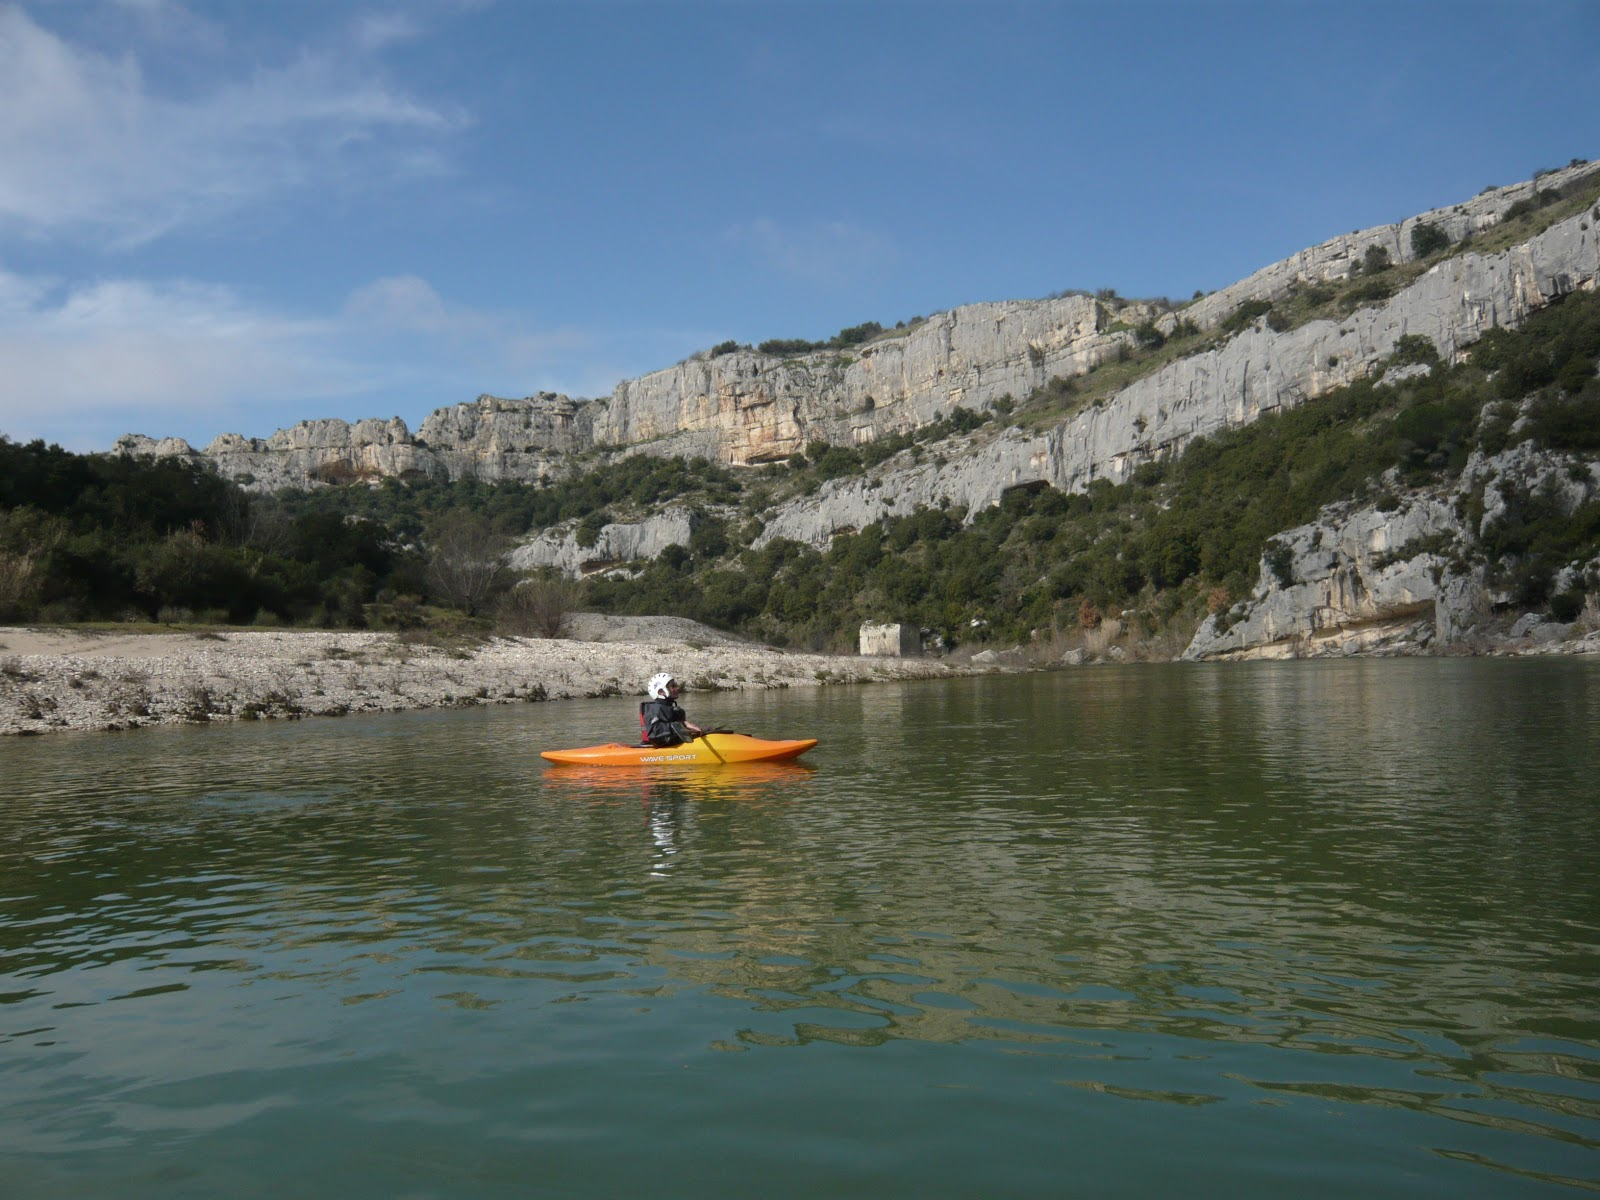 natu 39 rando canoe v lo au pont du gard gardon les vacances de la toussaint. Black Bedroom Furniture Sets. Home Design Ideas